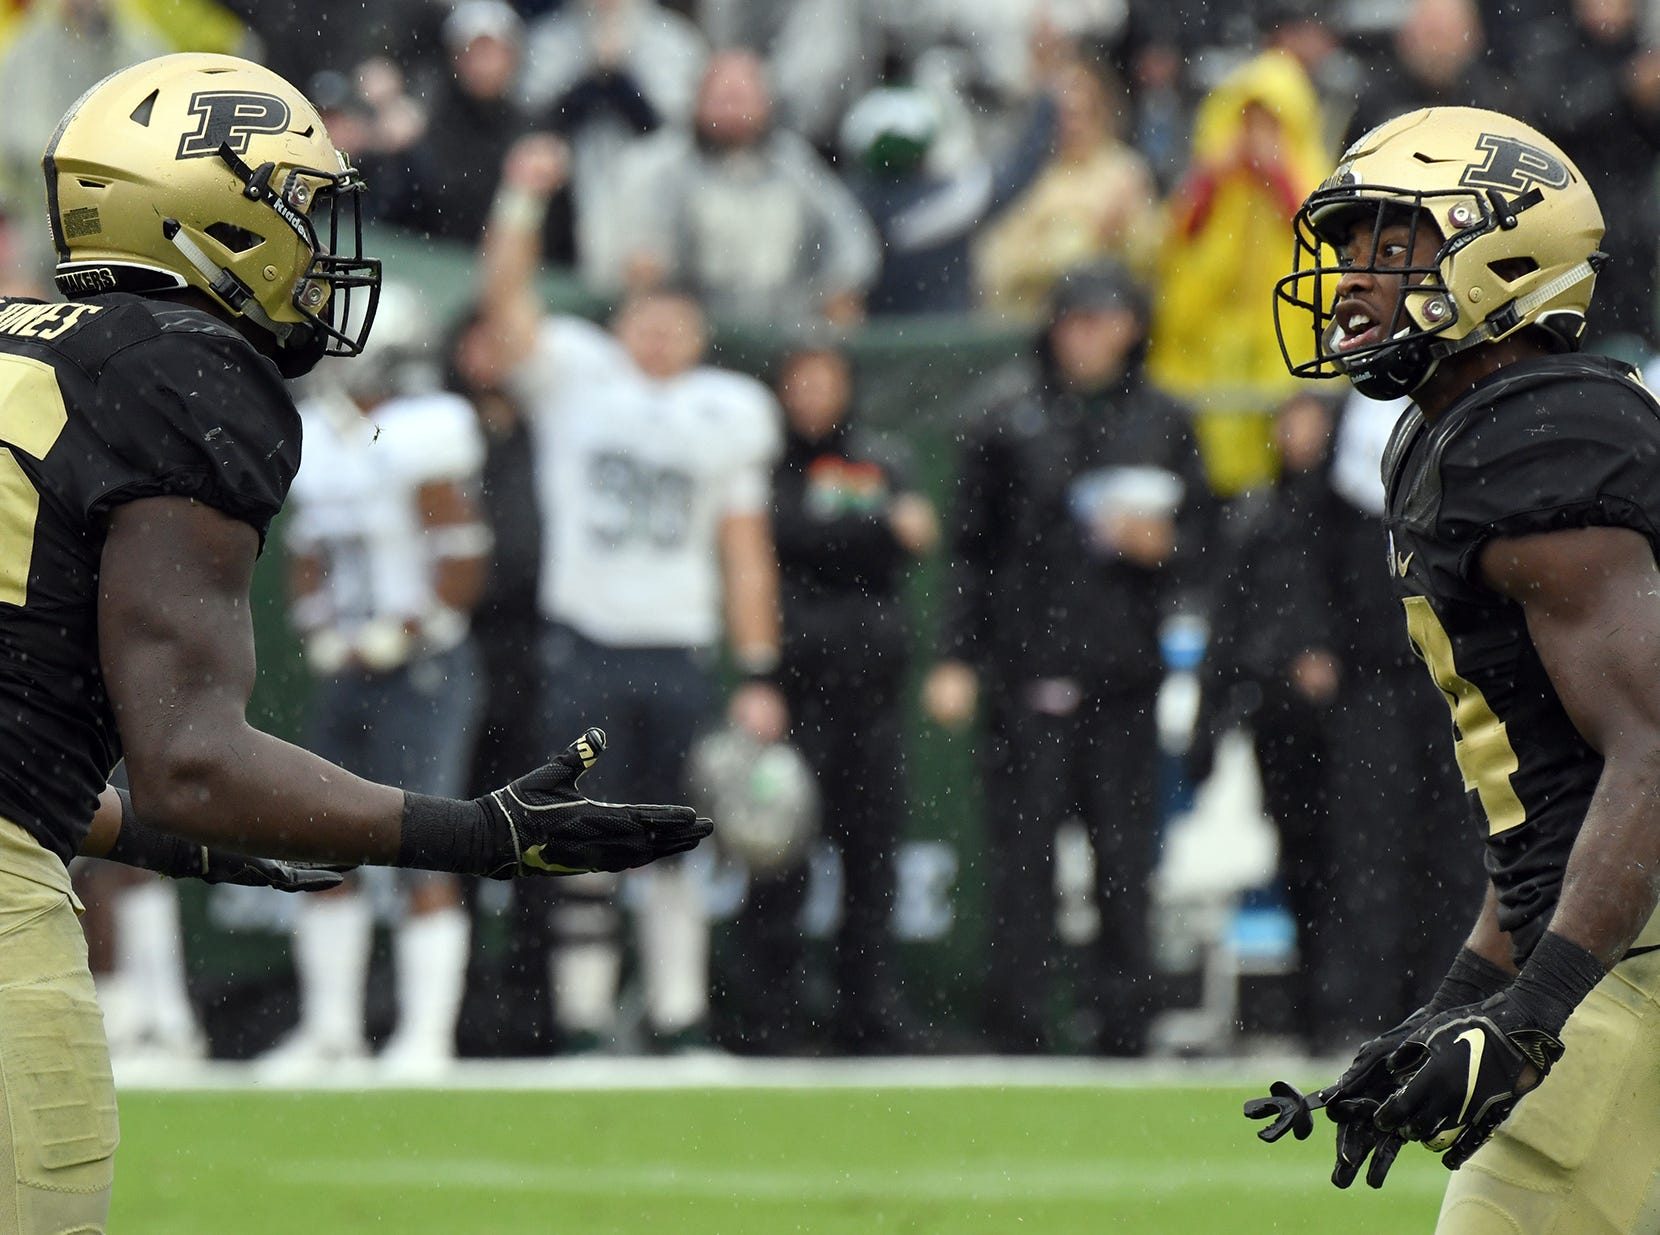 Purdue's Rondale Moore, right, and Cornel Jones discuss a personal foul call in the fourth quarter in West Lafayette on September 8, 2018. Purdue lost 20-19 to Eastern Michigan.